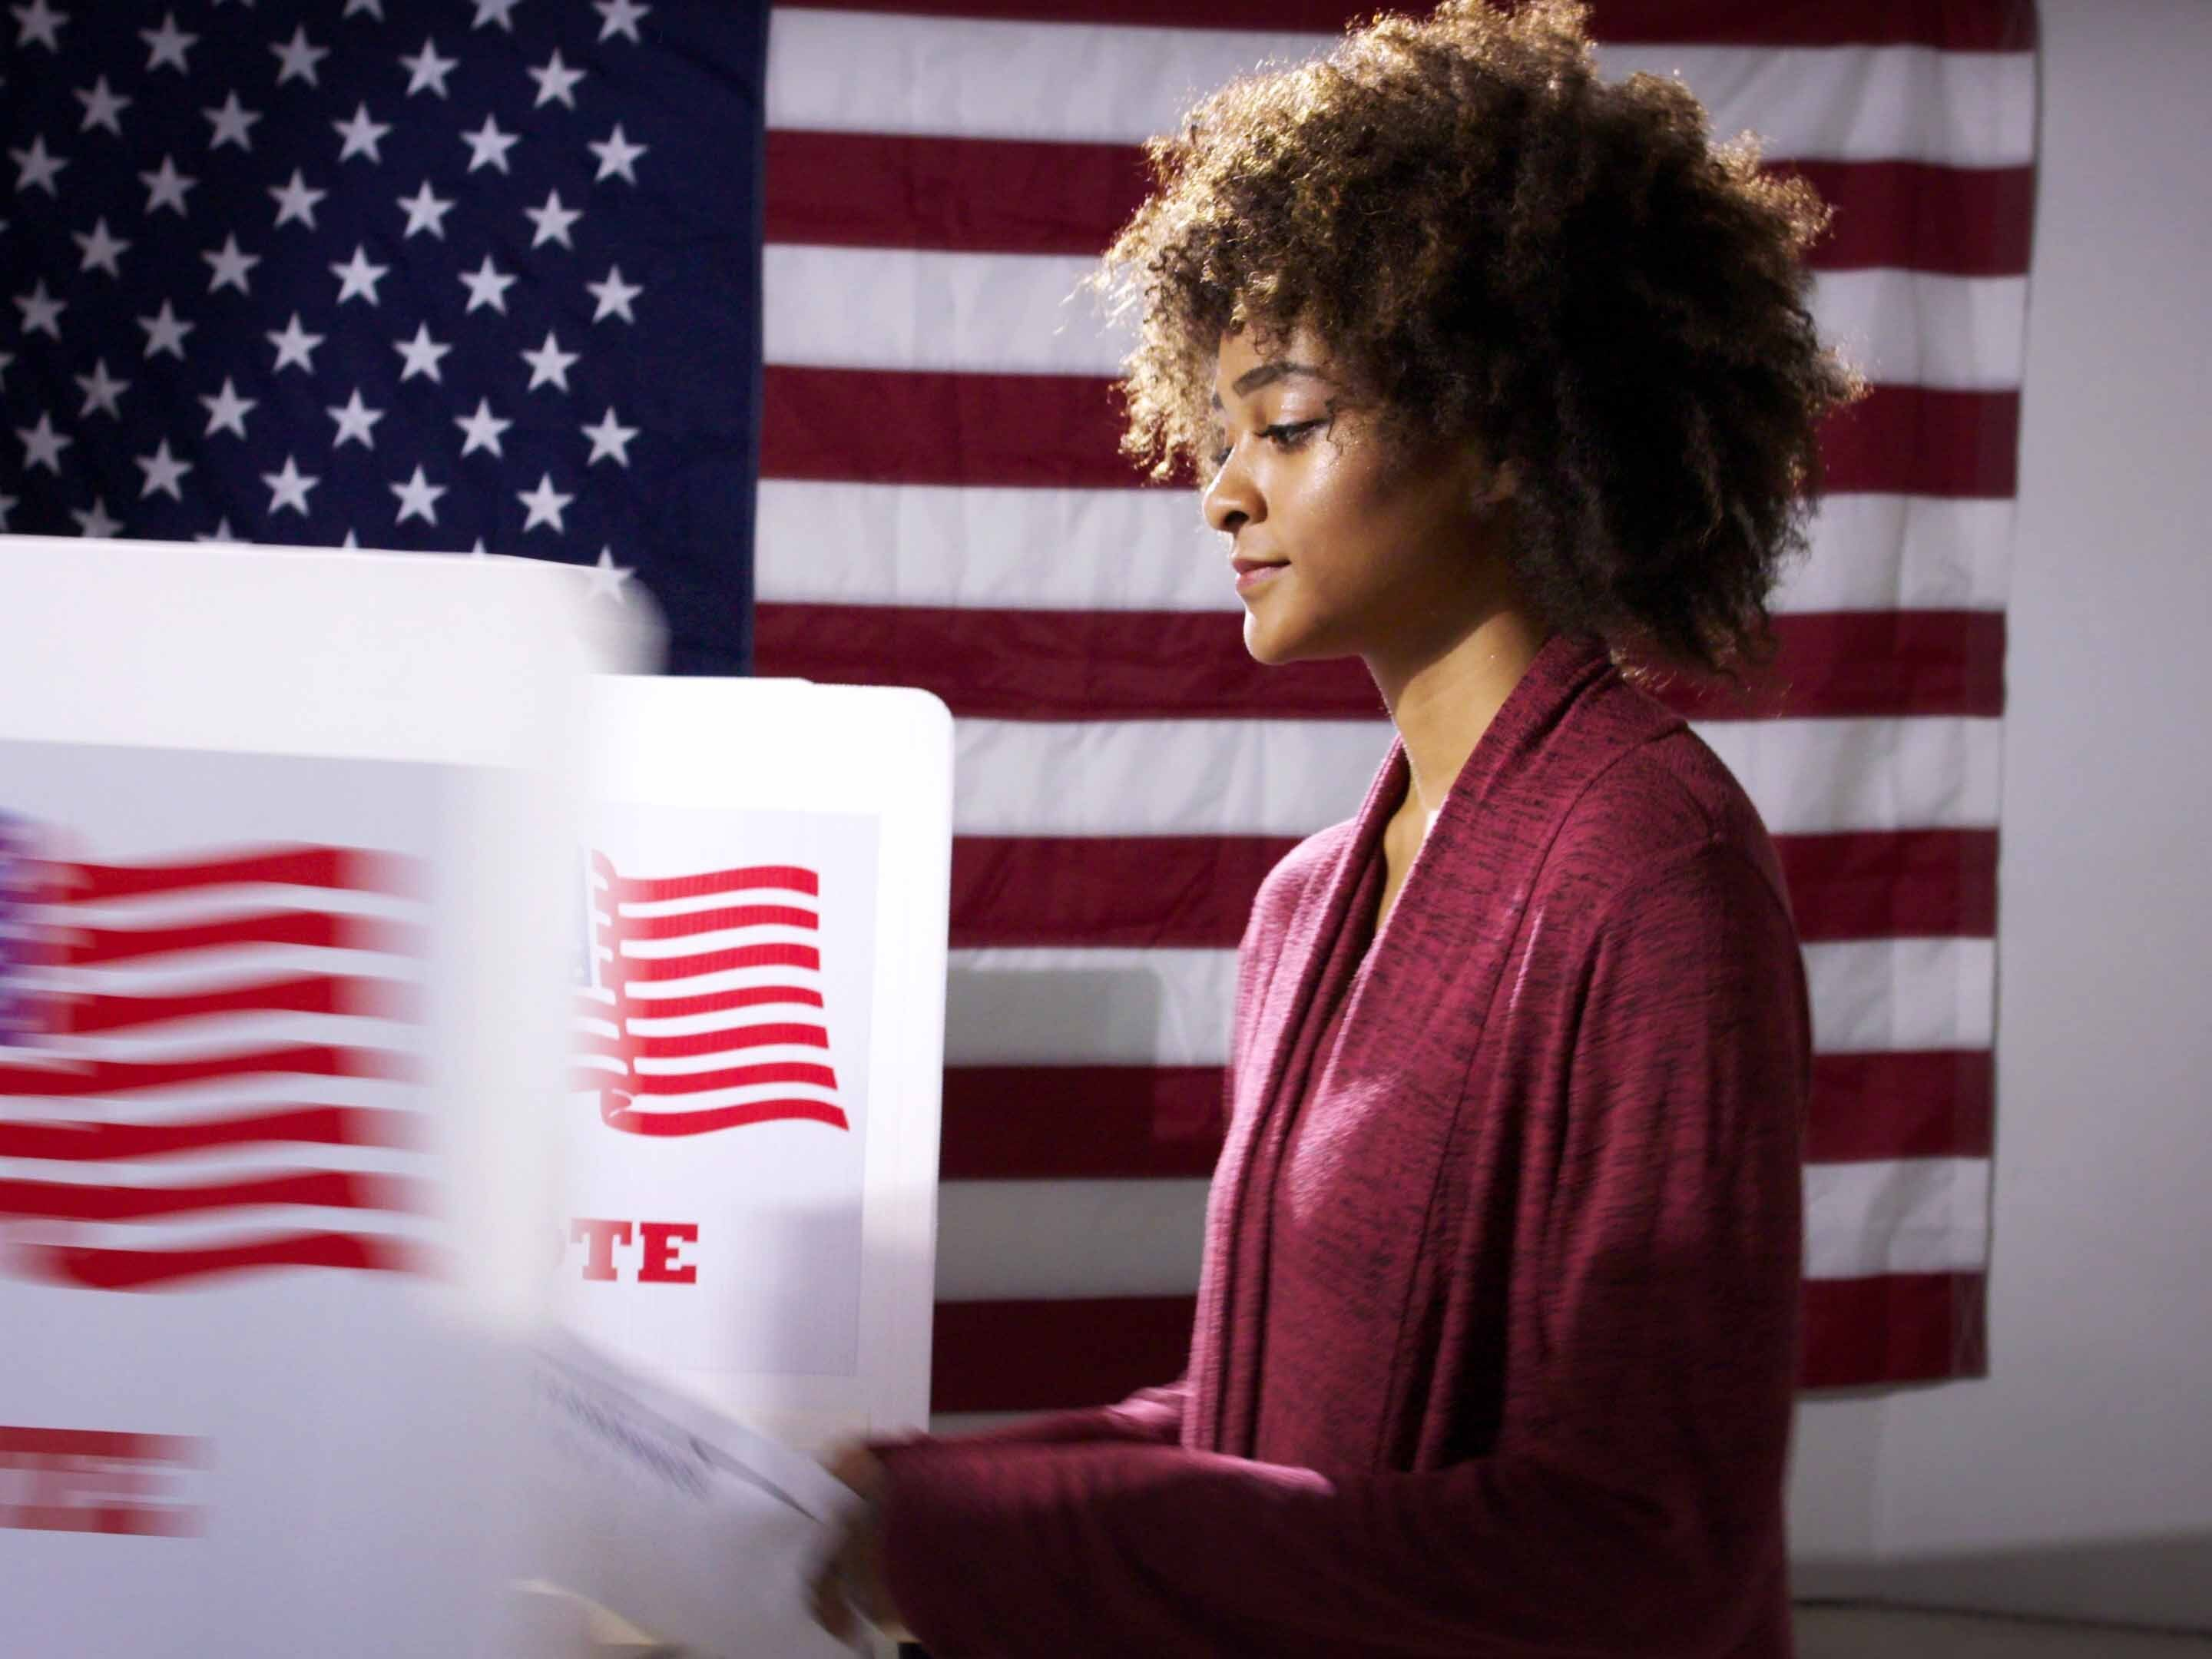 Woman voting at poll booth